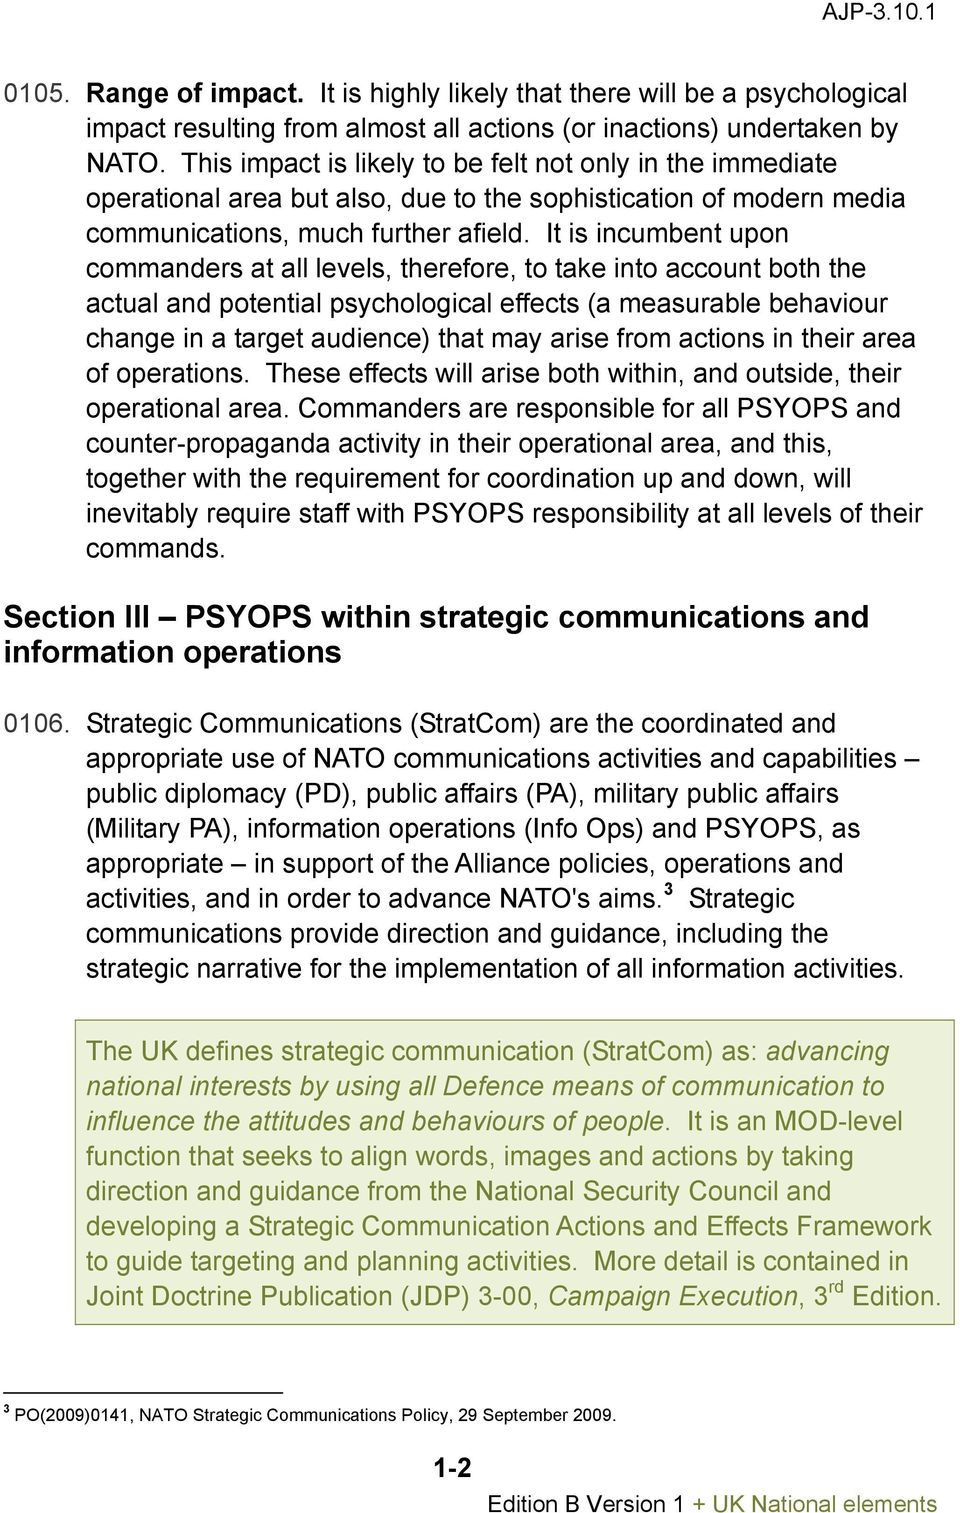 It is incumbent upon commanders at all levels, therefore, to take into account both the actual and potential psychological effects (a measurable behaviour change in a target audience) that may arise